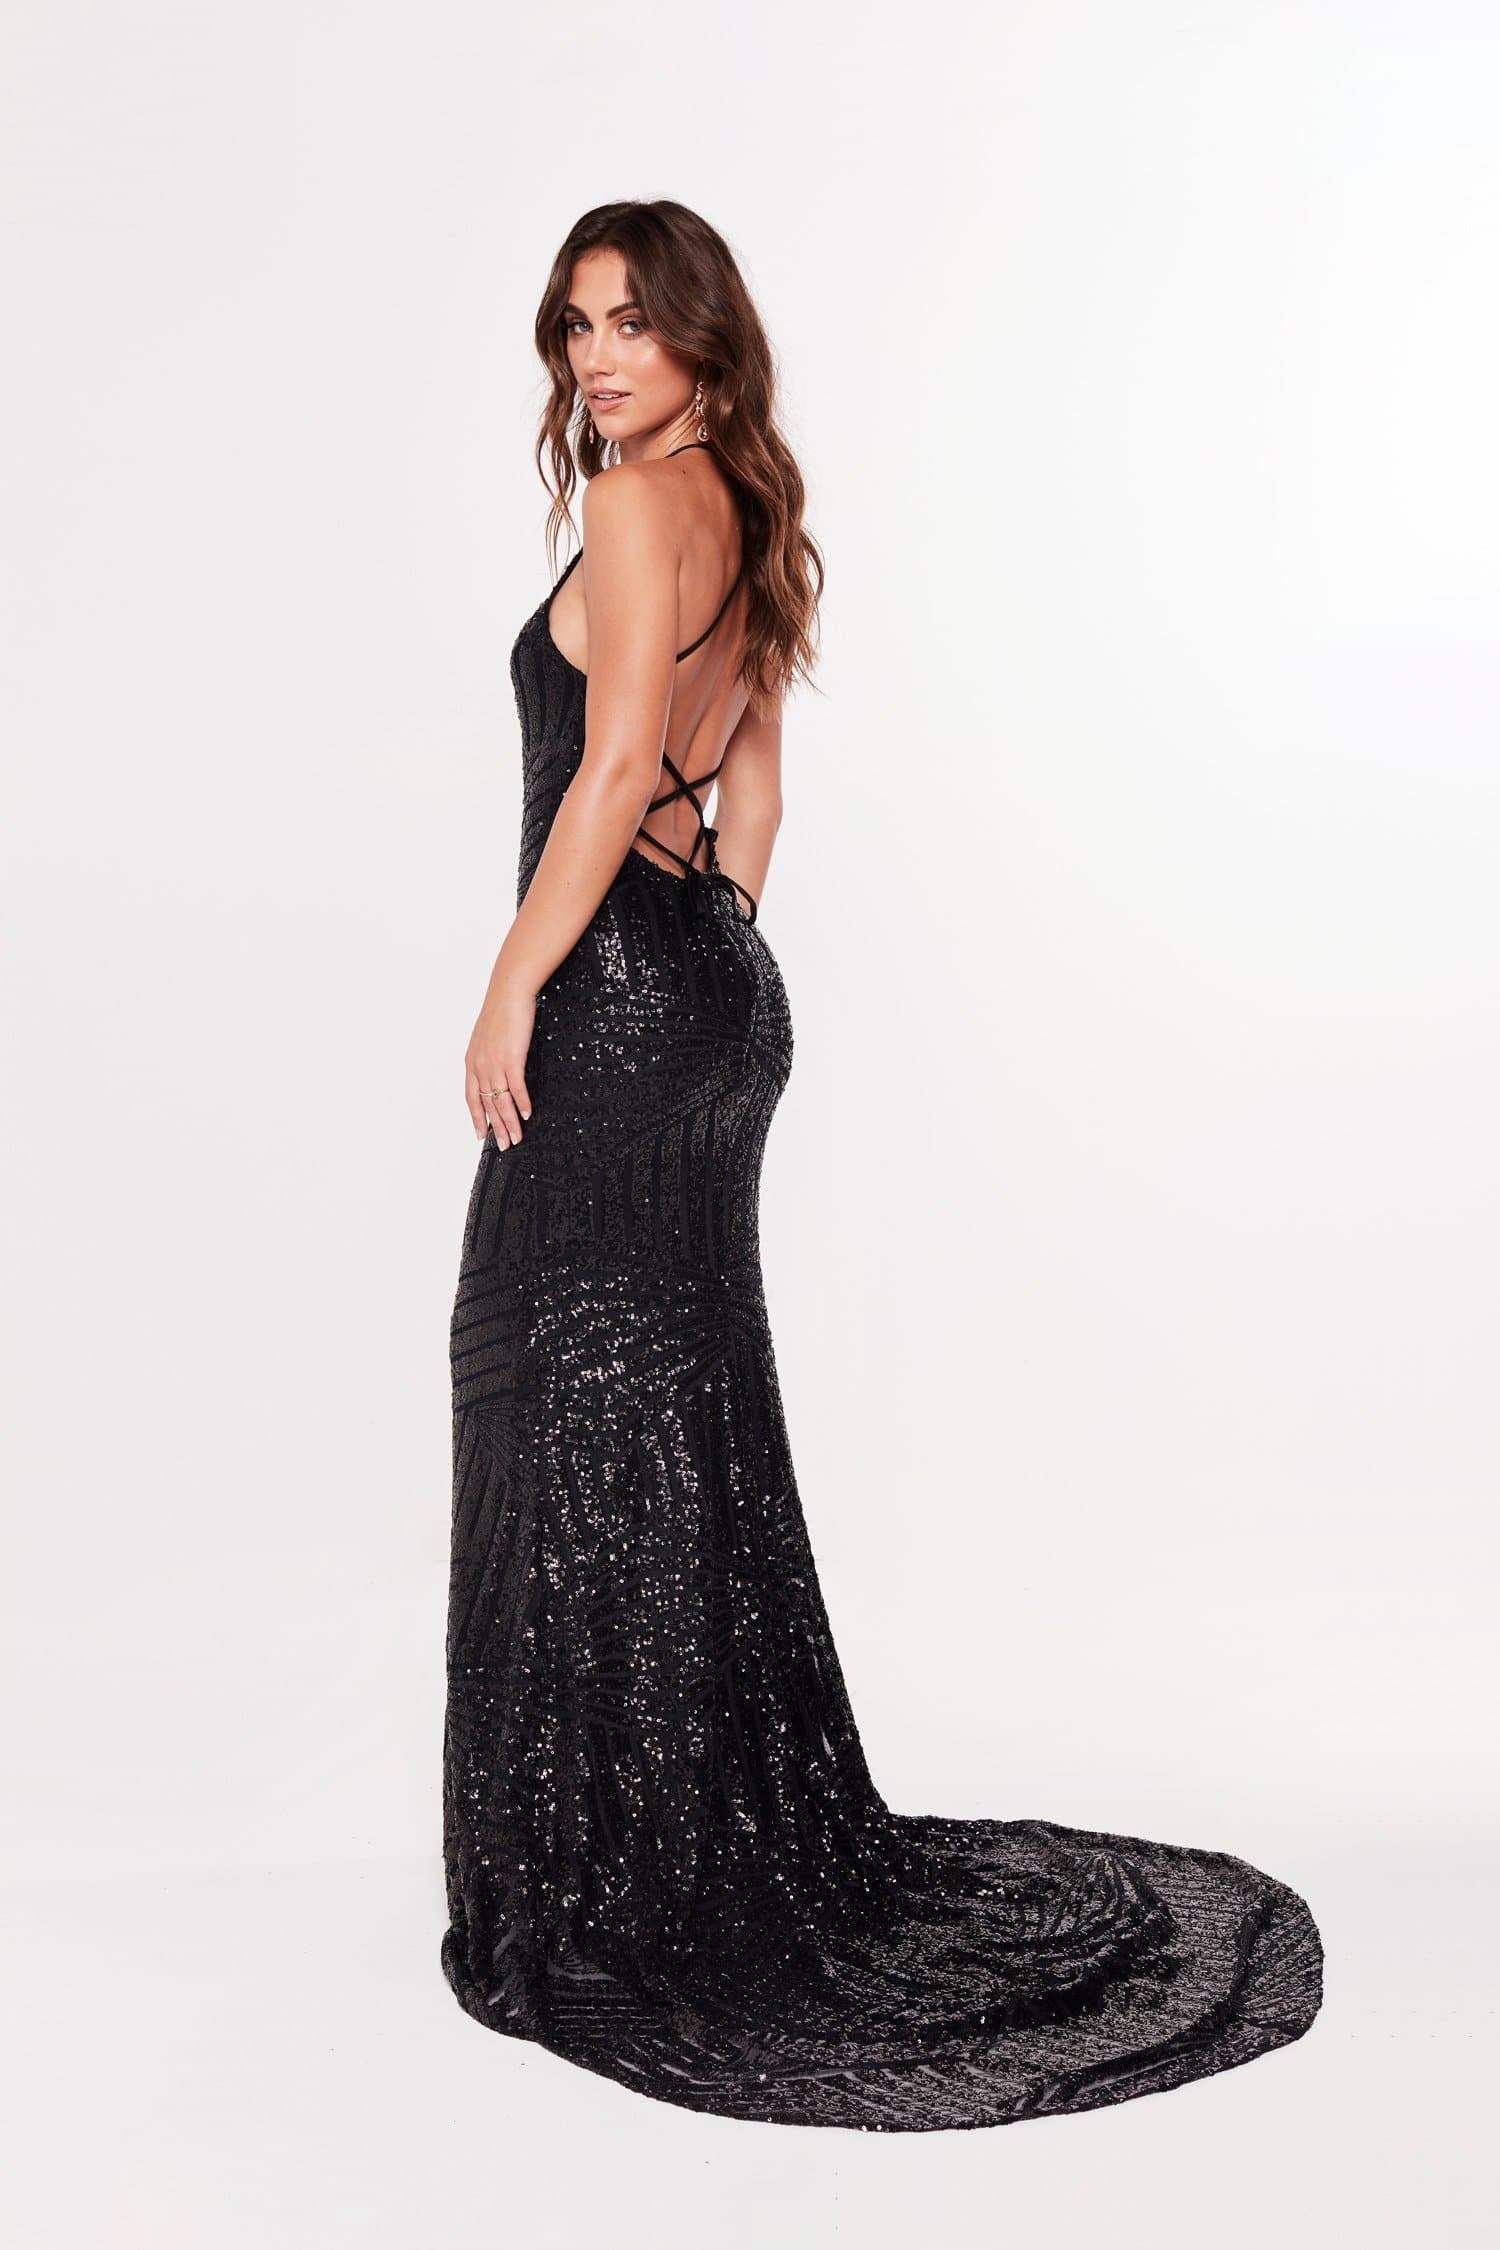 A&N Luxe Aniya Black sequins high neck with lace up back prom dress